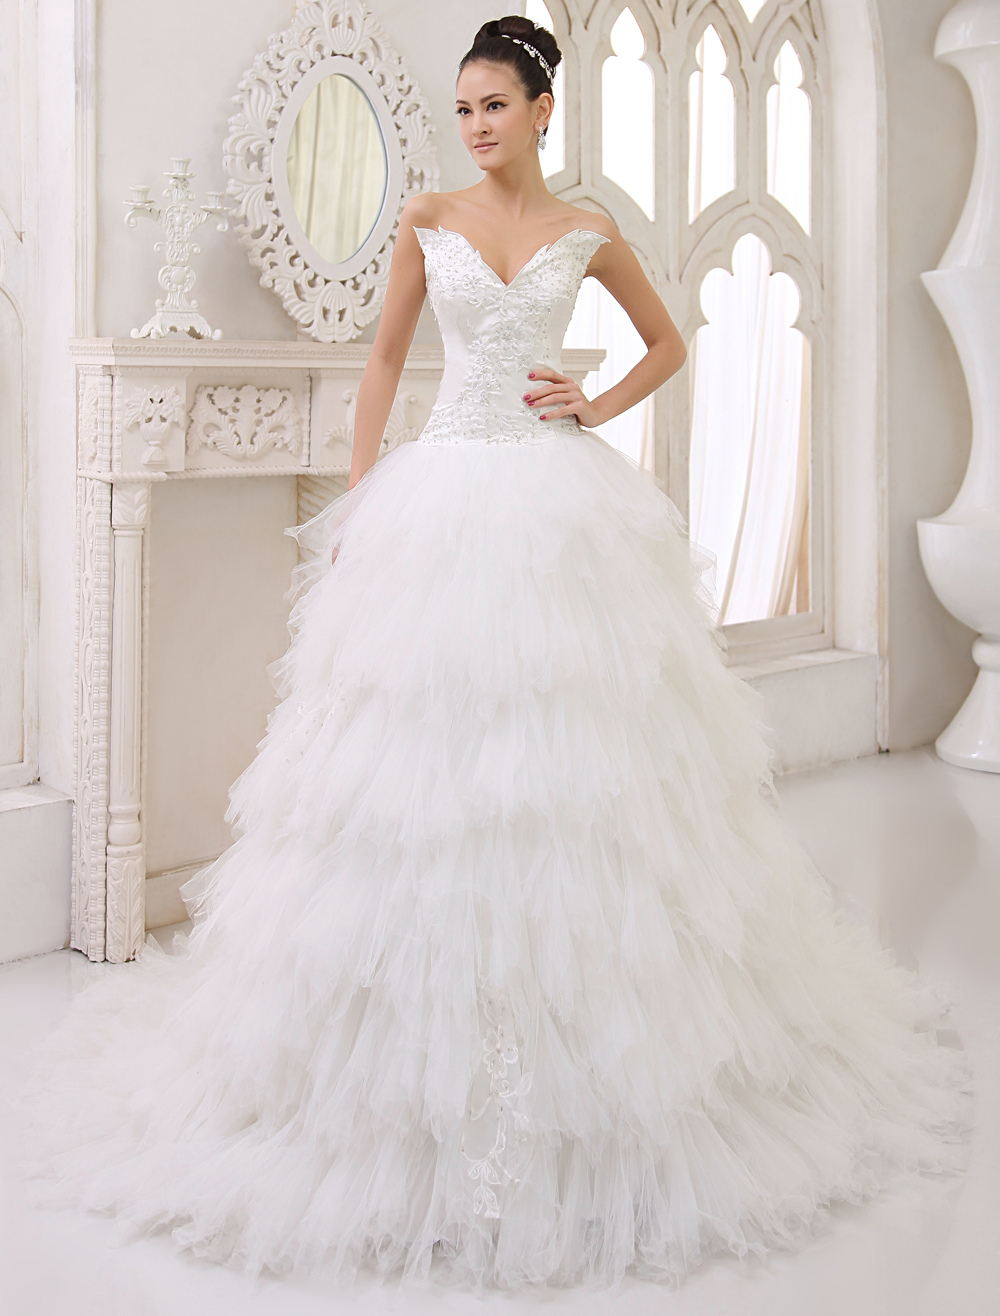 Buy Wedding Dresses Strapless Satin Bridal Gown Ivory Tulle Tiered Lace Beading Chapel Train Bridal Dress for $265.99 in Milanoo store